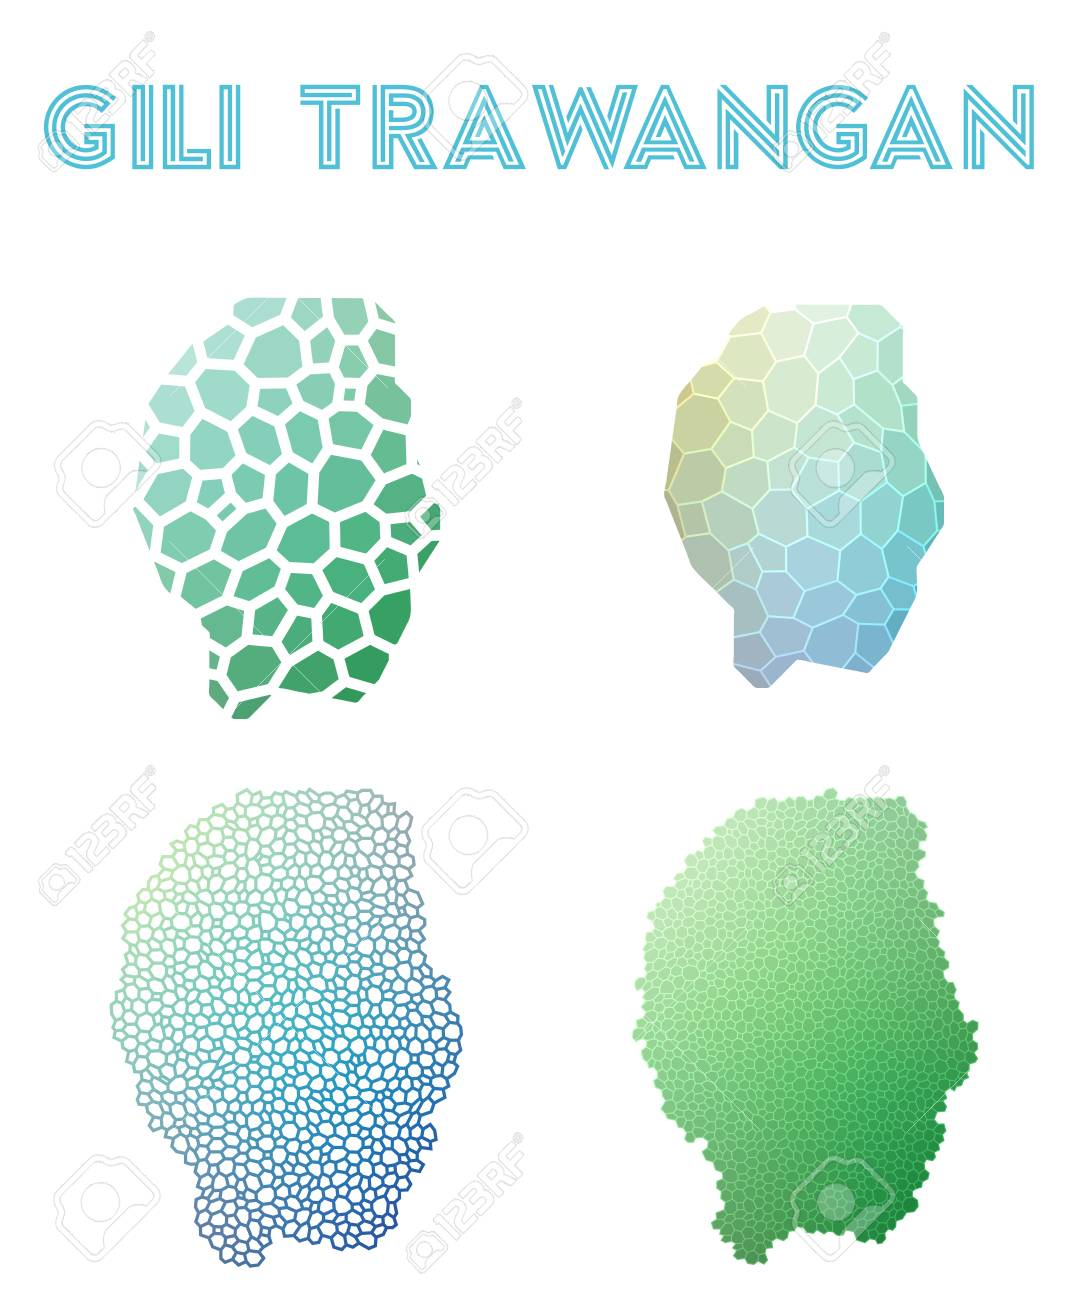 Banco De Imagens   Gili Trawangan Polygonal Island Map. Mosaic Style Maps  Collection. Bright Abstract Tessellation, Geometric, Low Poly, Modern  Design.